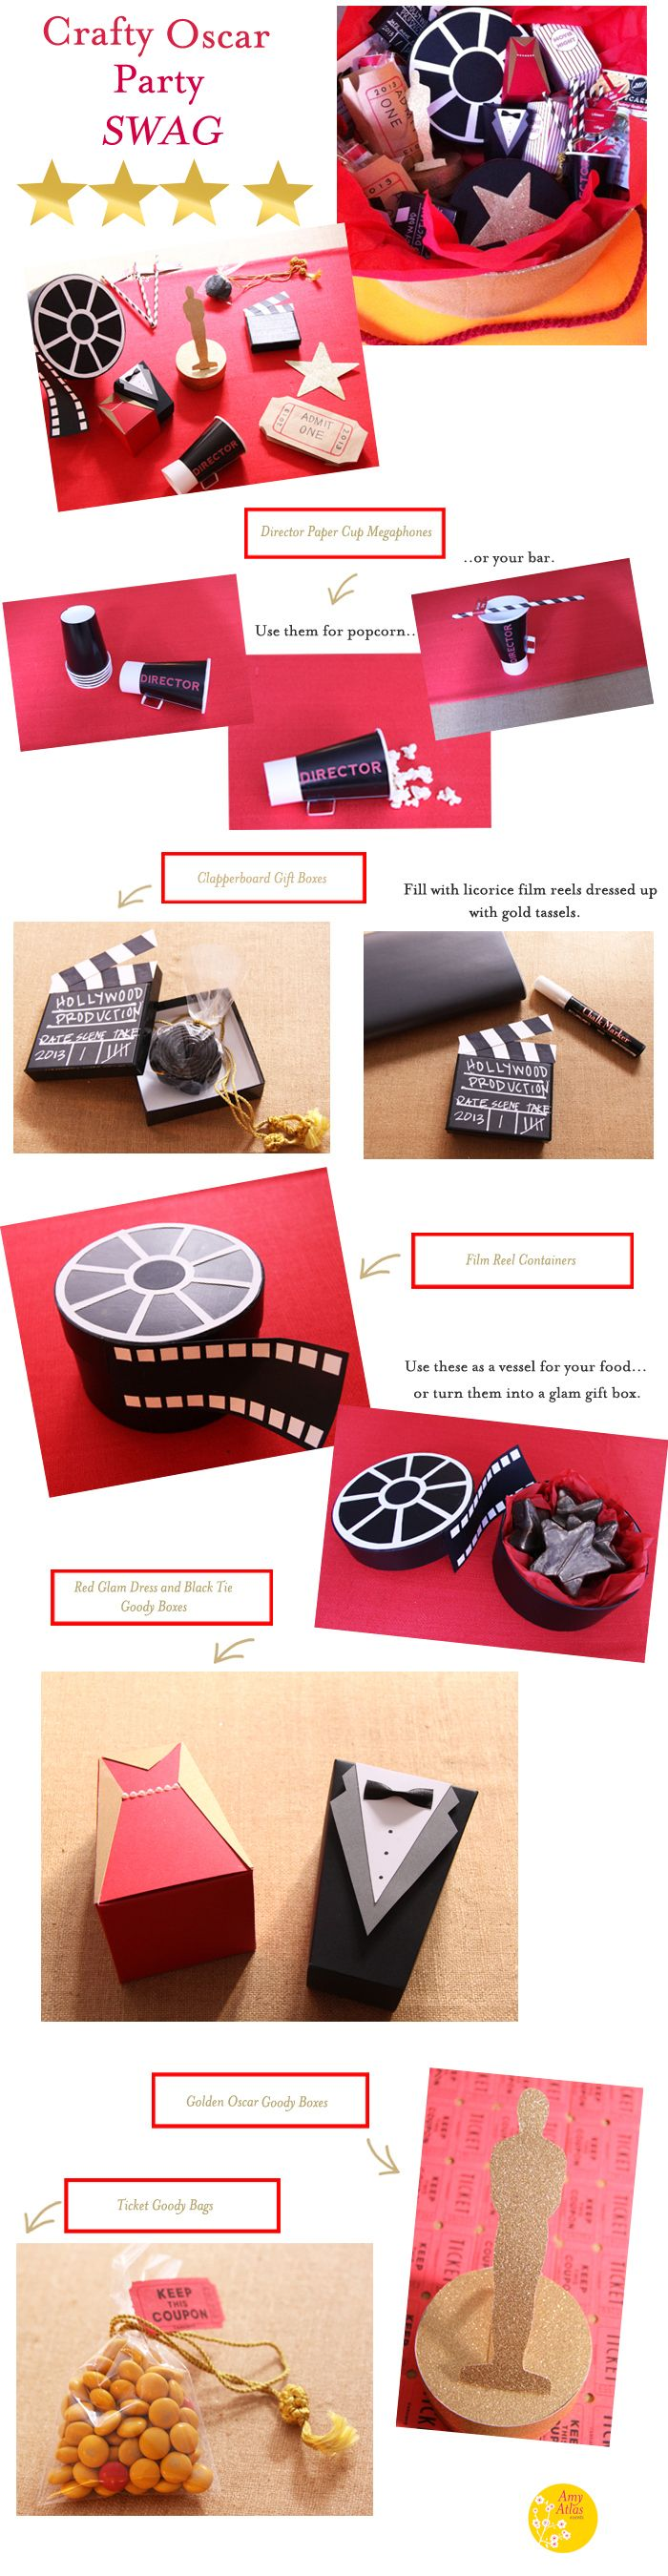 Crafty Oscar Party Gift Bag Ideas « SWEET DESIGNS – AMY ATLAS EVENTS